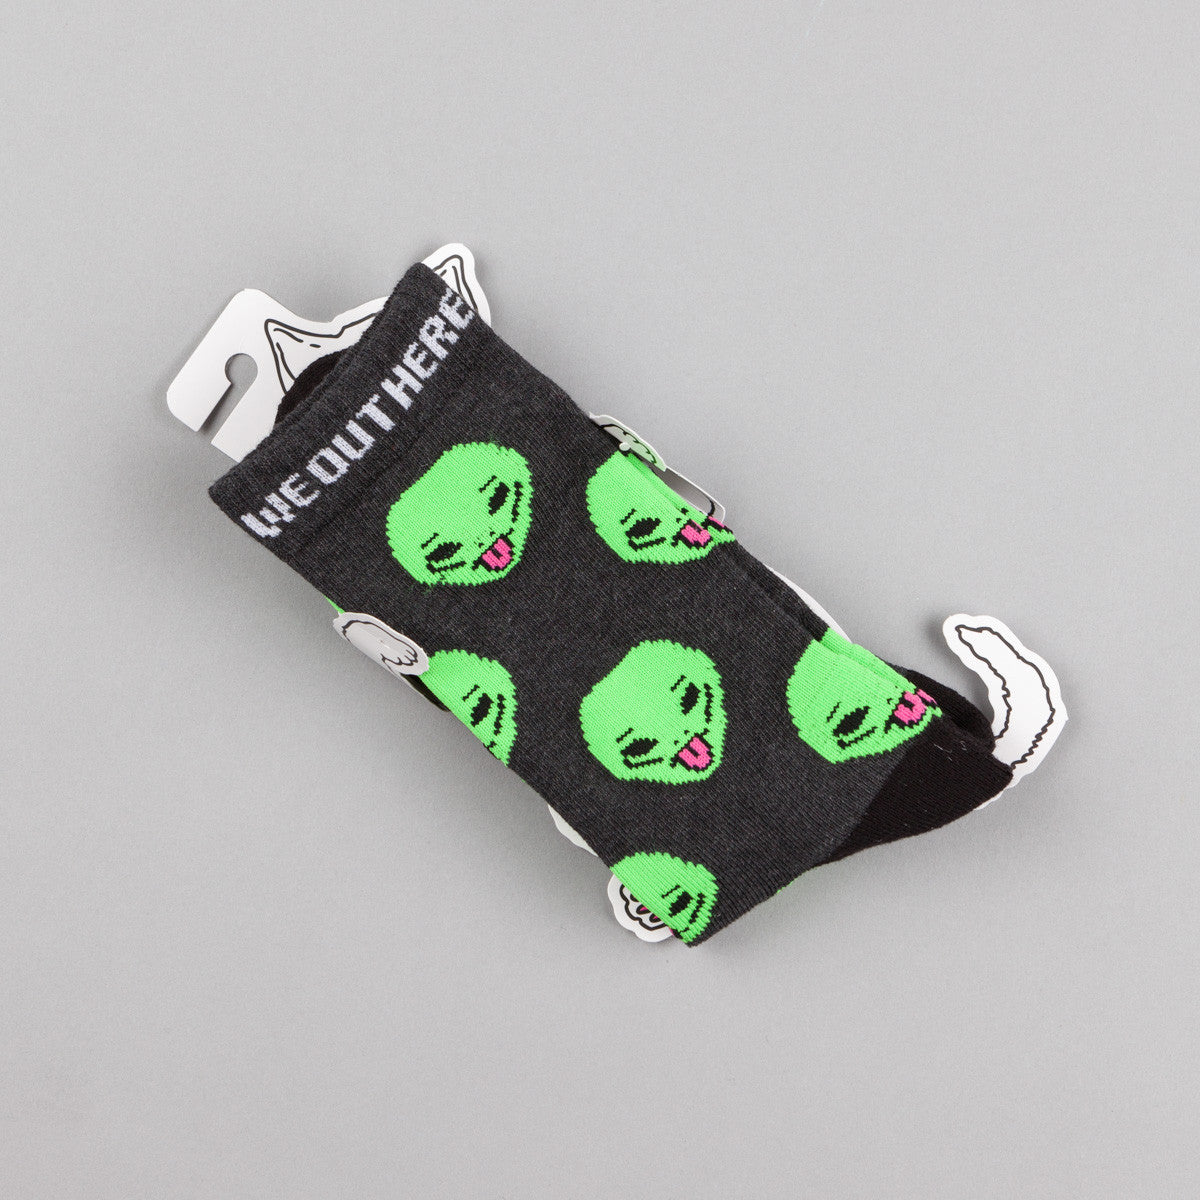 Rip N Dip We Out Here Socks - Heather Black